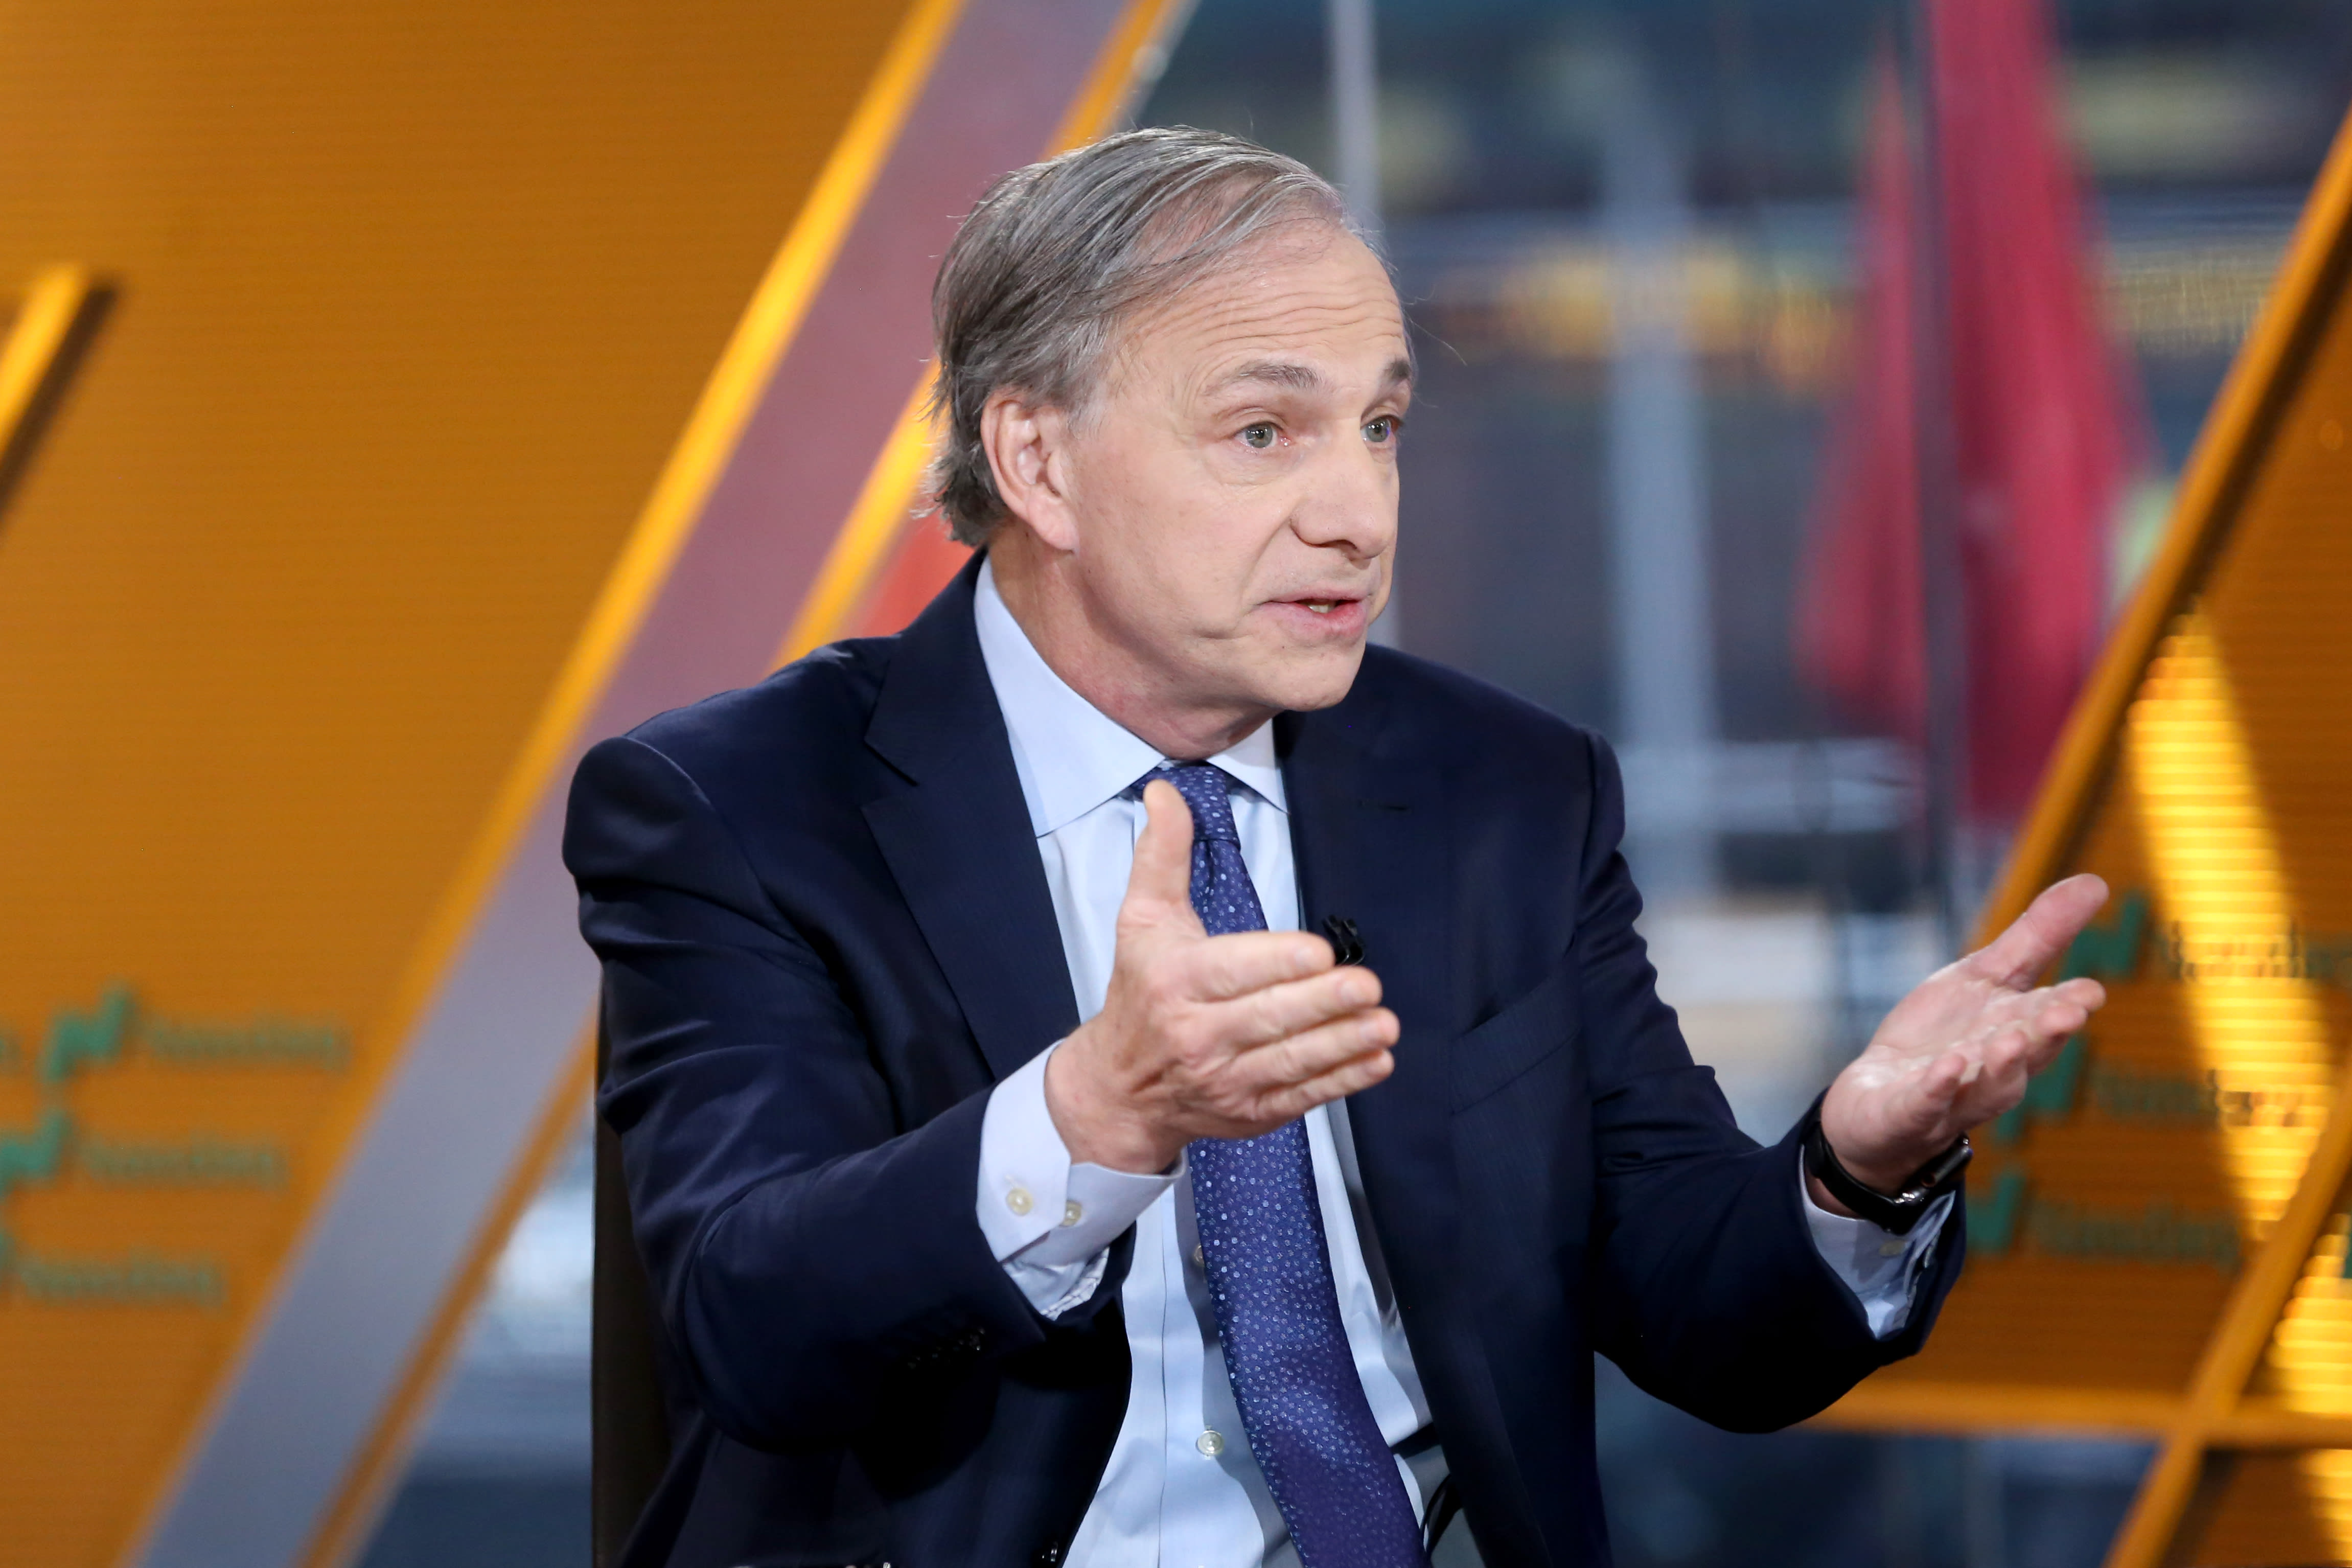 Bridgewater's Dalio says Fed has done all it can, targeted fiscal stimulus is needed